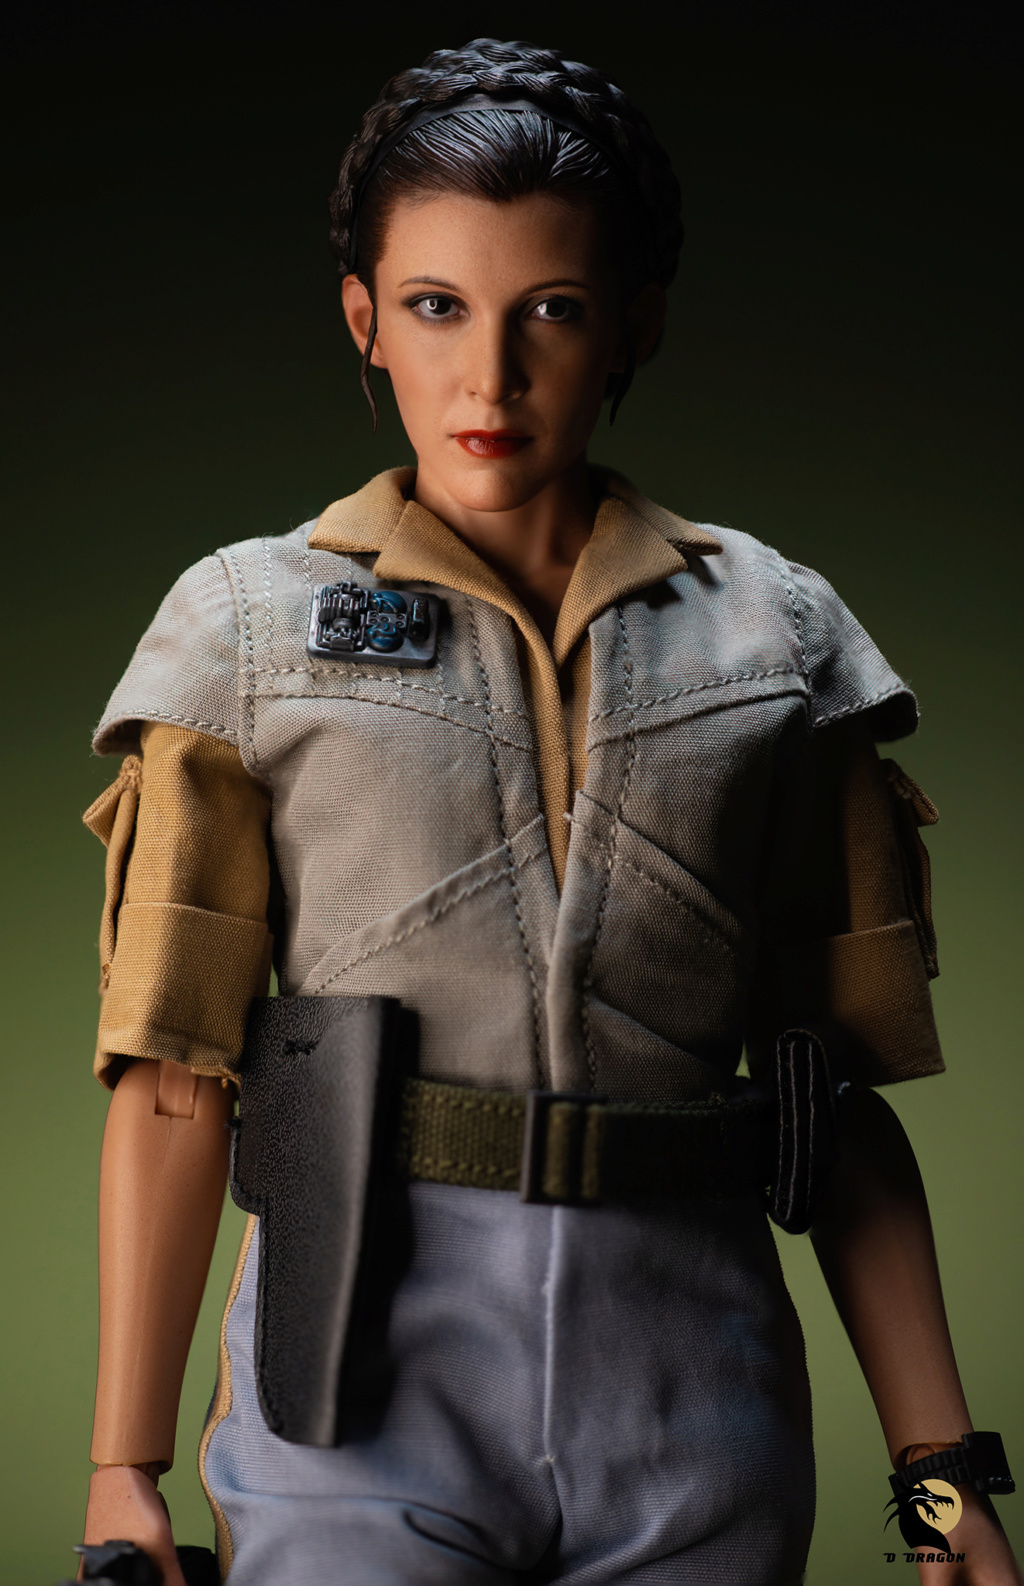 Endor Leia - NEW PRODUCT: HOT TOYS: STAR WARS: RETURN OF THE JEDI PRINCESS LEIA AND WICKET 1/6TH SCALE COLLECTIBLE FIGURES SET Endor_18